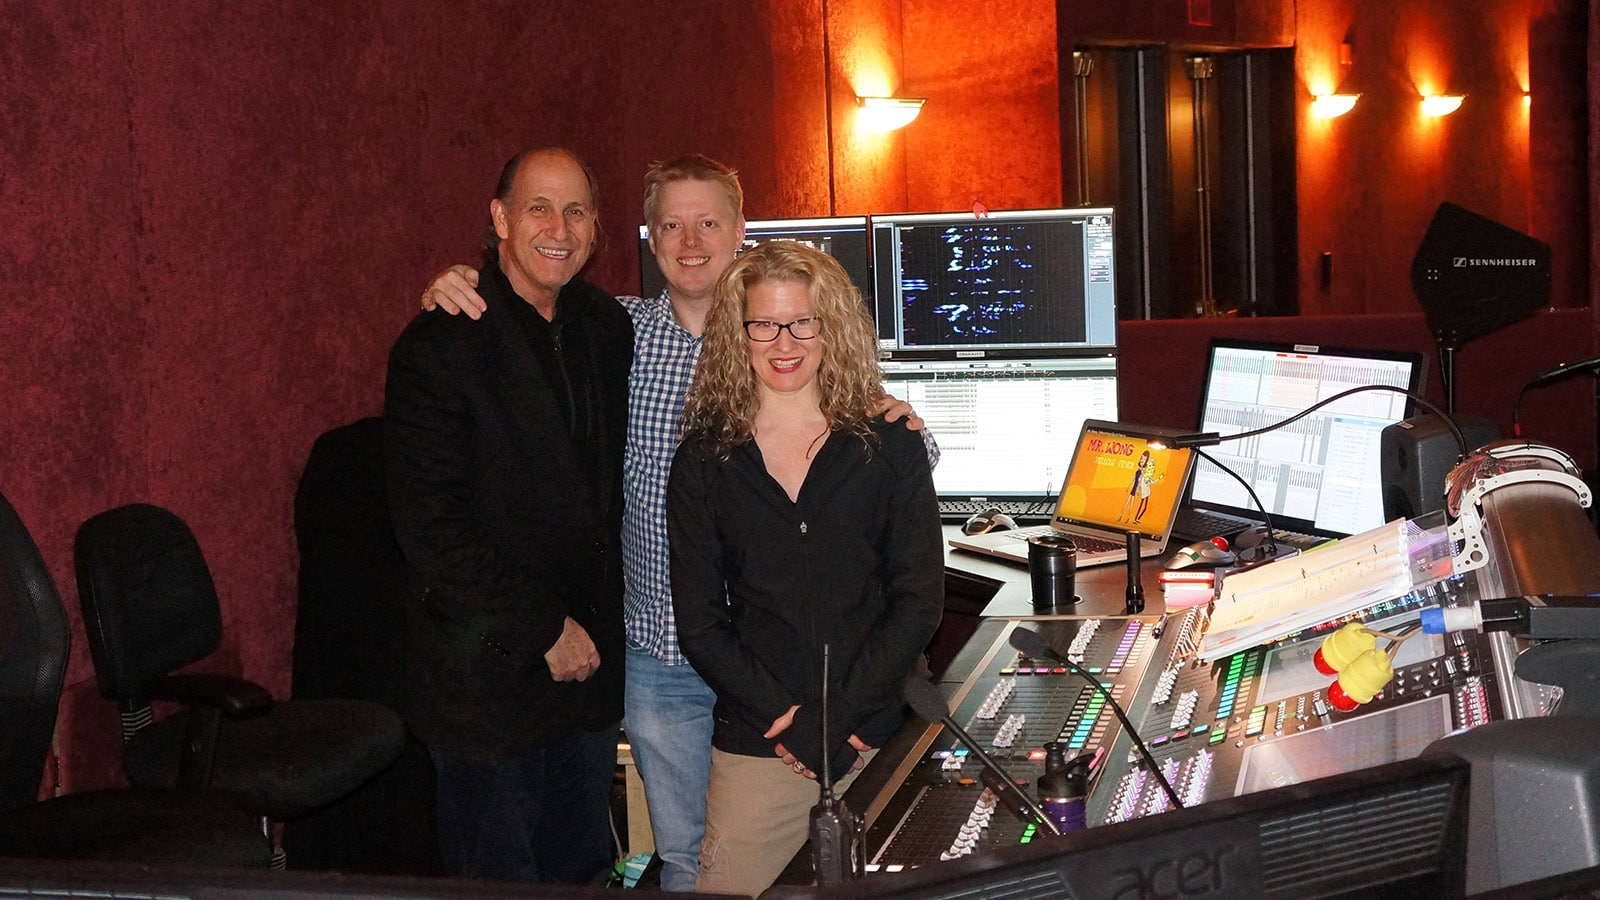 Left to Right: Steve Kennedy; Andrew Keister; and Julie Sloan, Mixer, On Your Feet